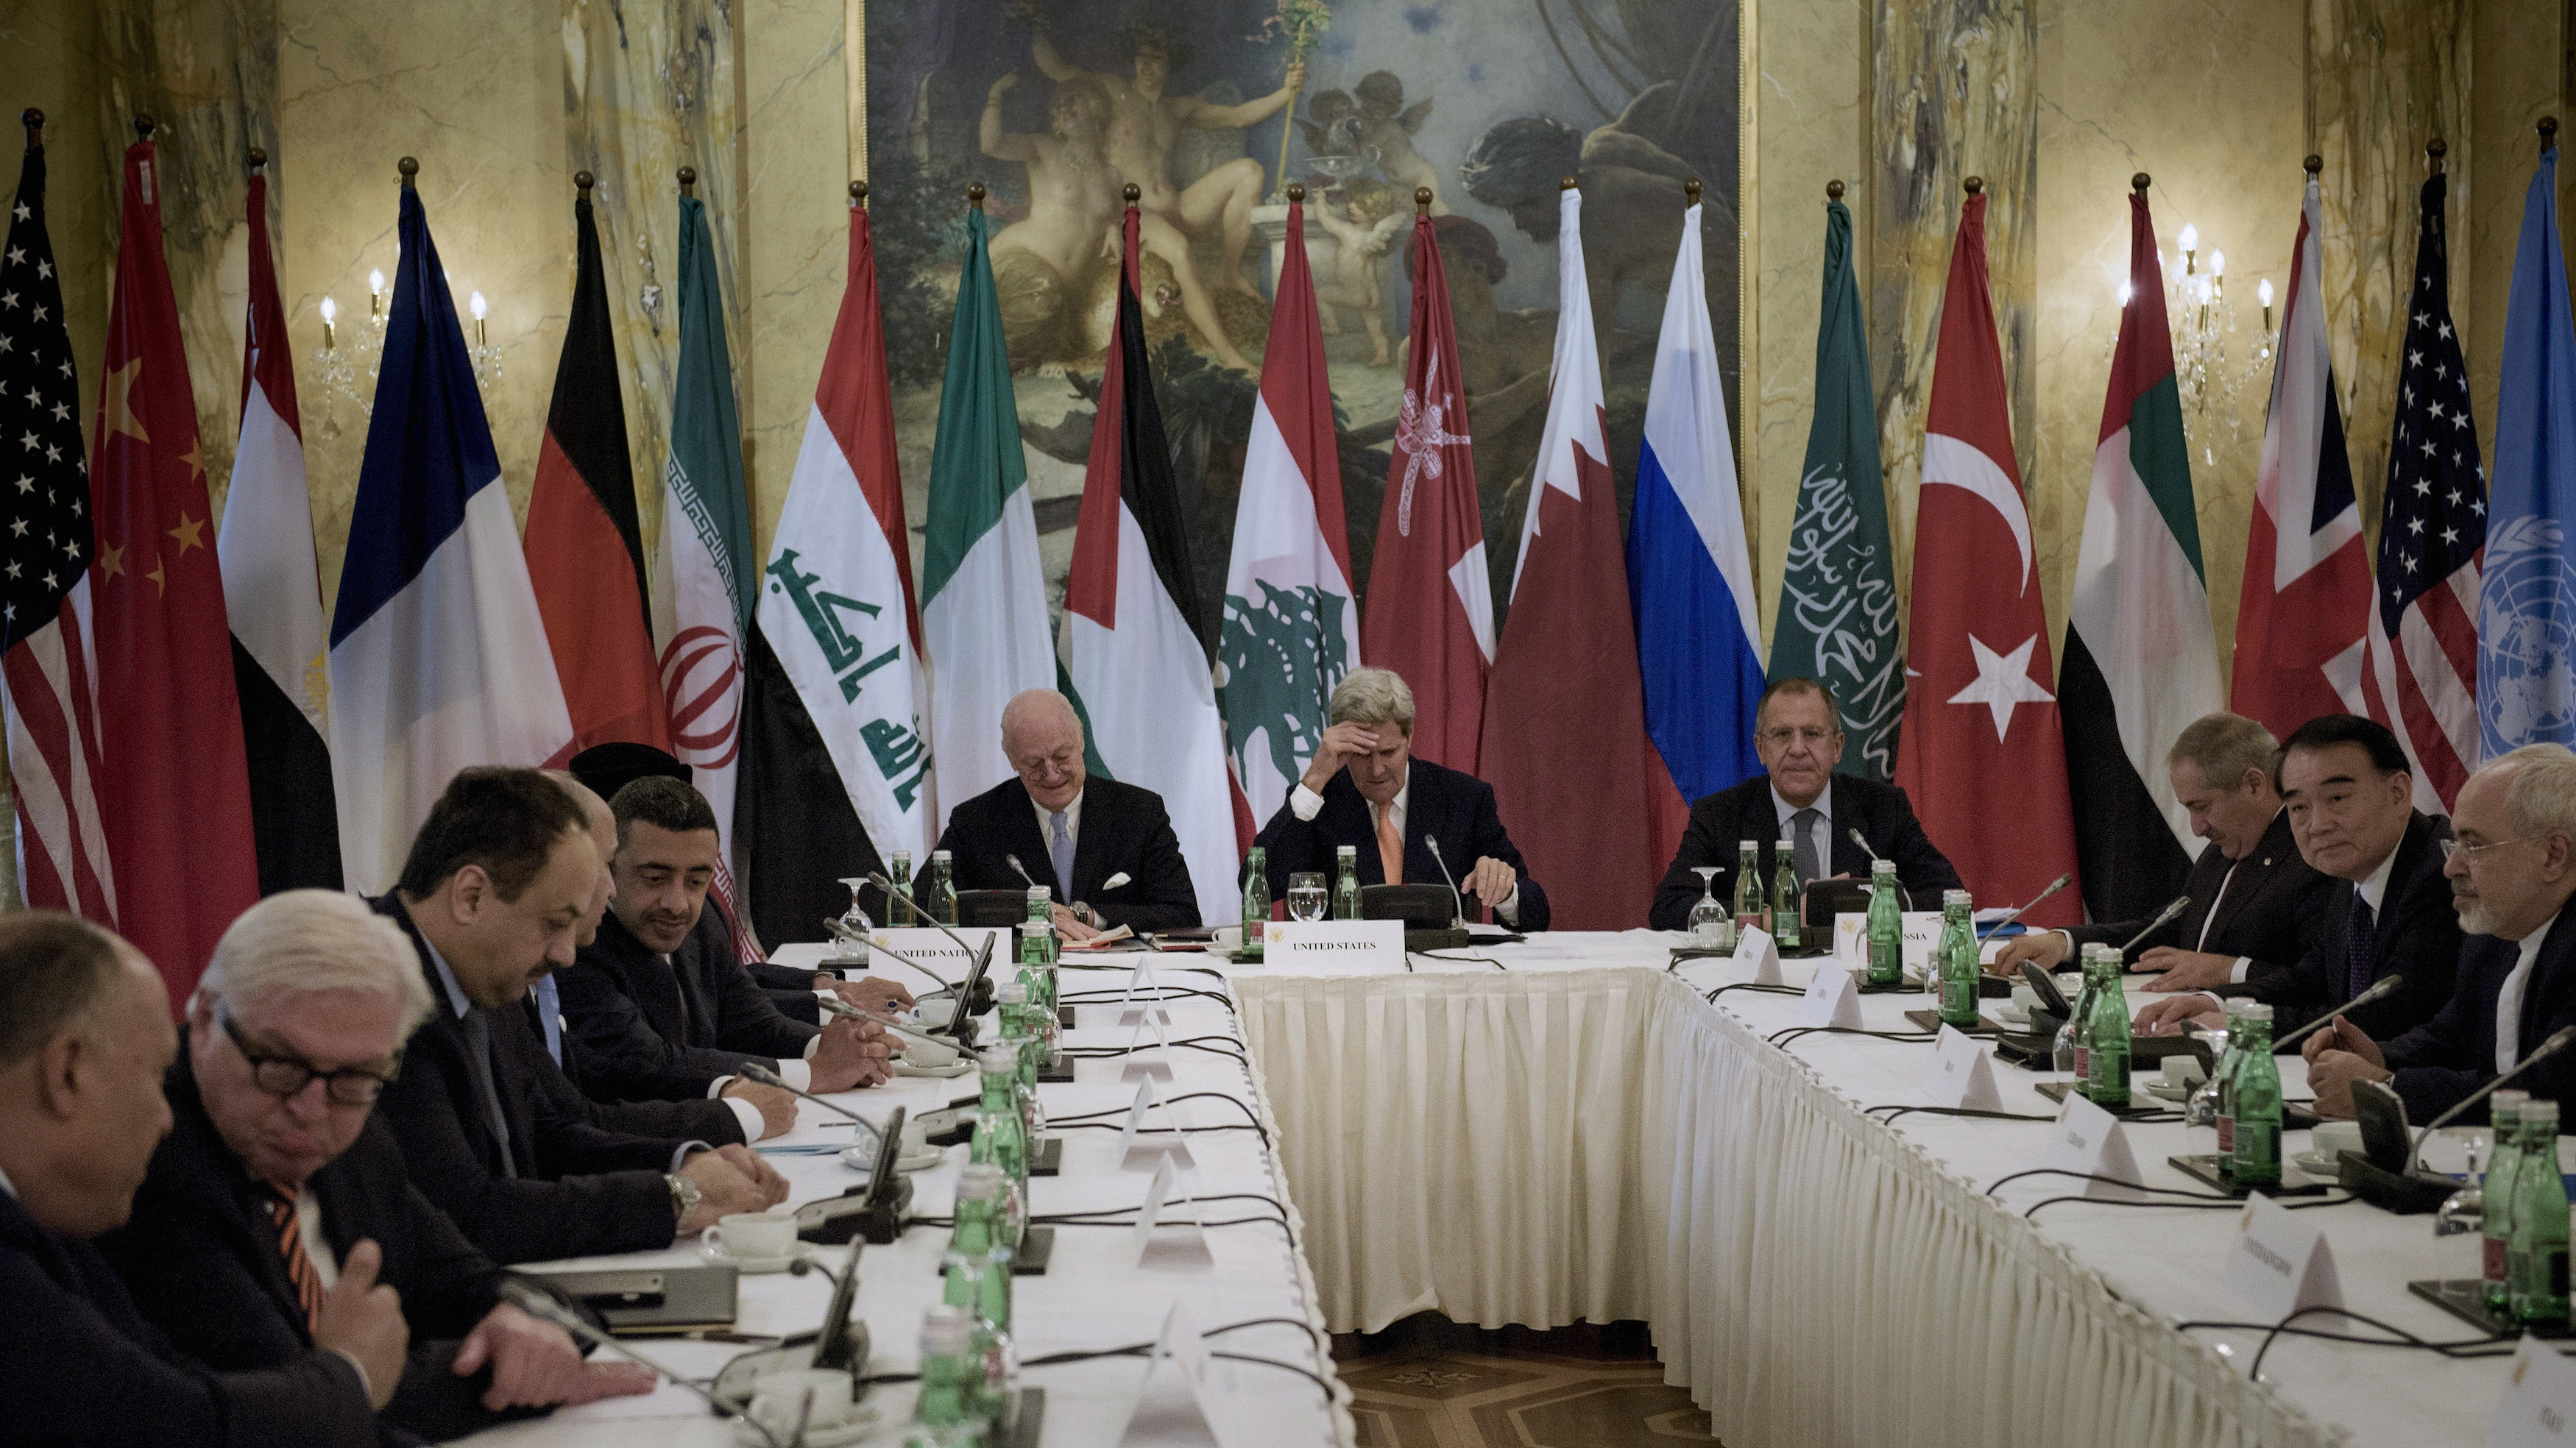 World powers and delegates from across the Arab world meet in Vienna, Austria, to discuss peace in war torn Syria.